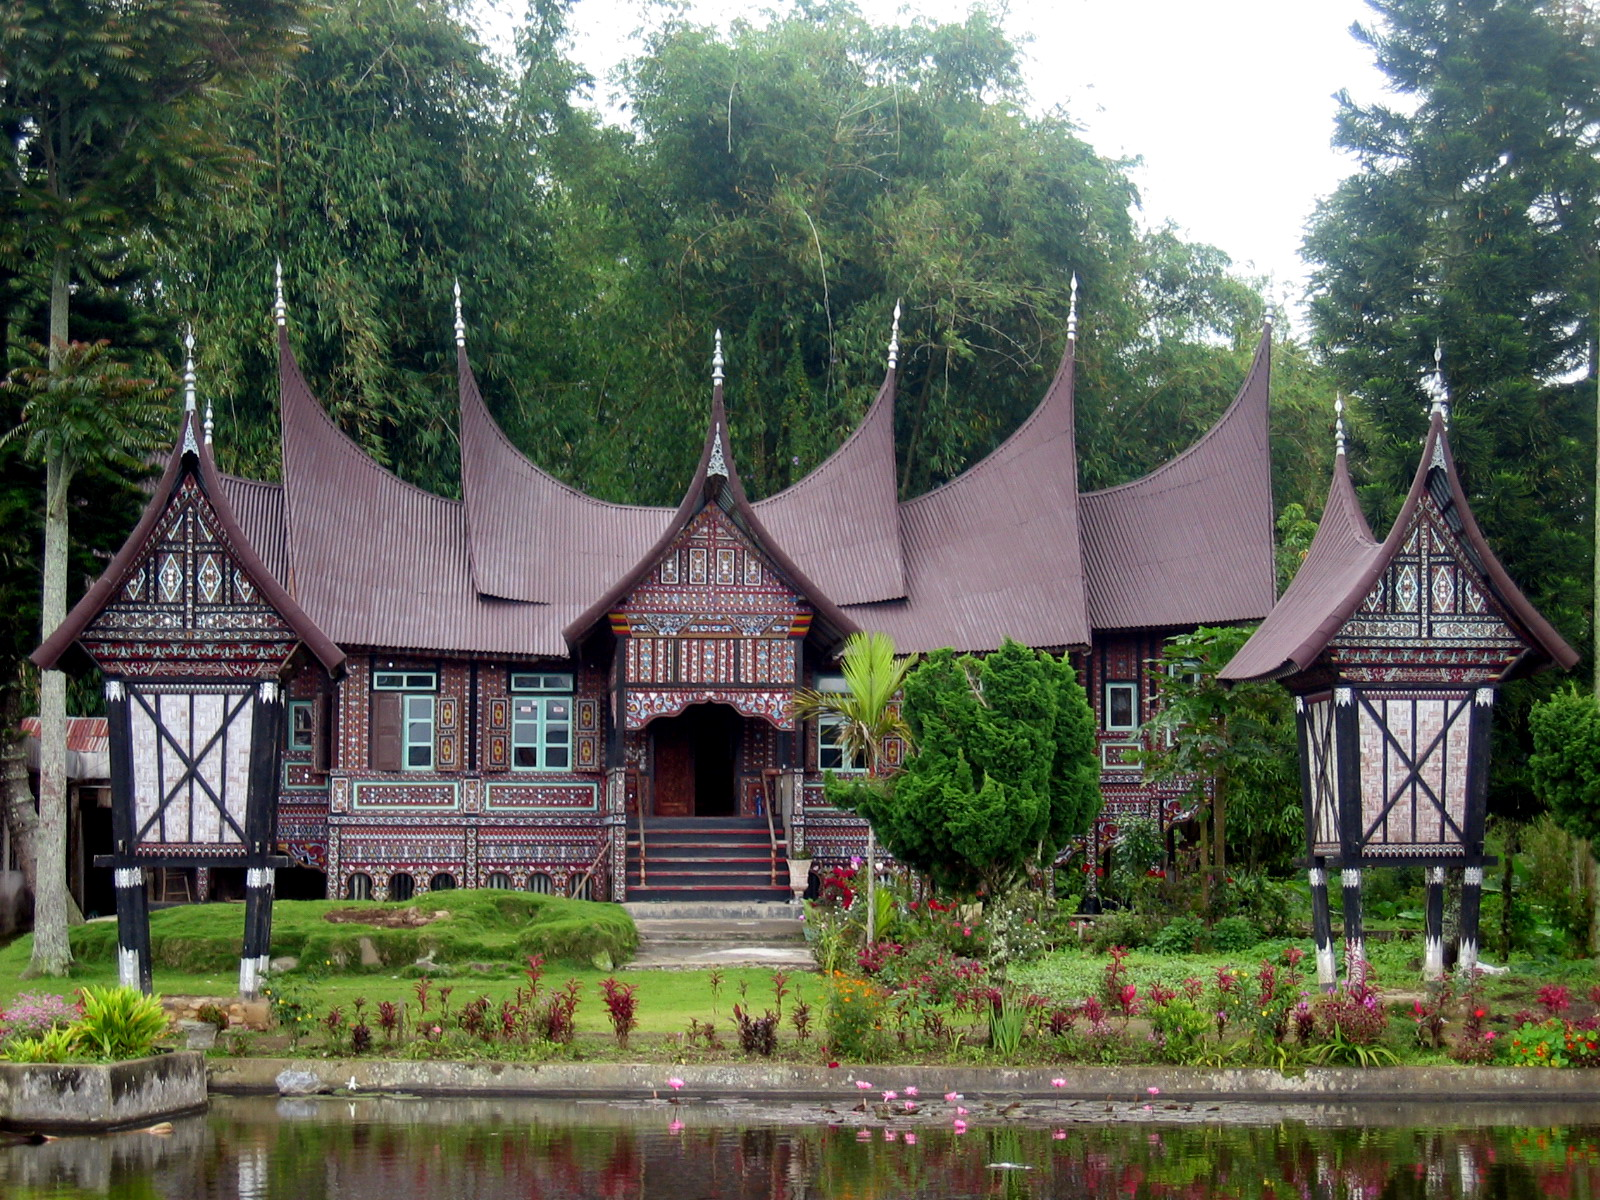 Description Rumah Gadang.jpg